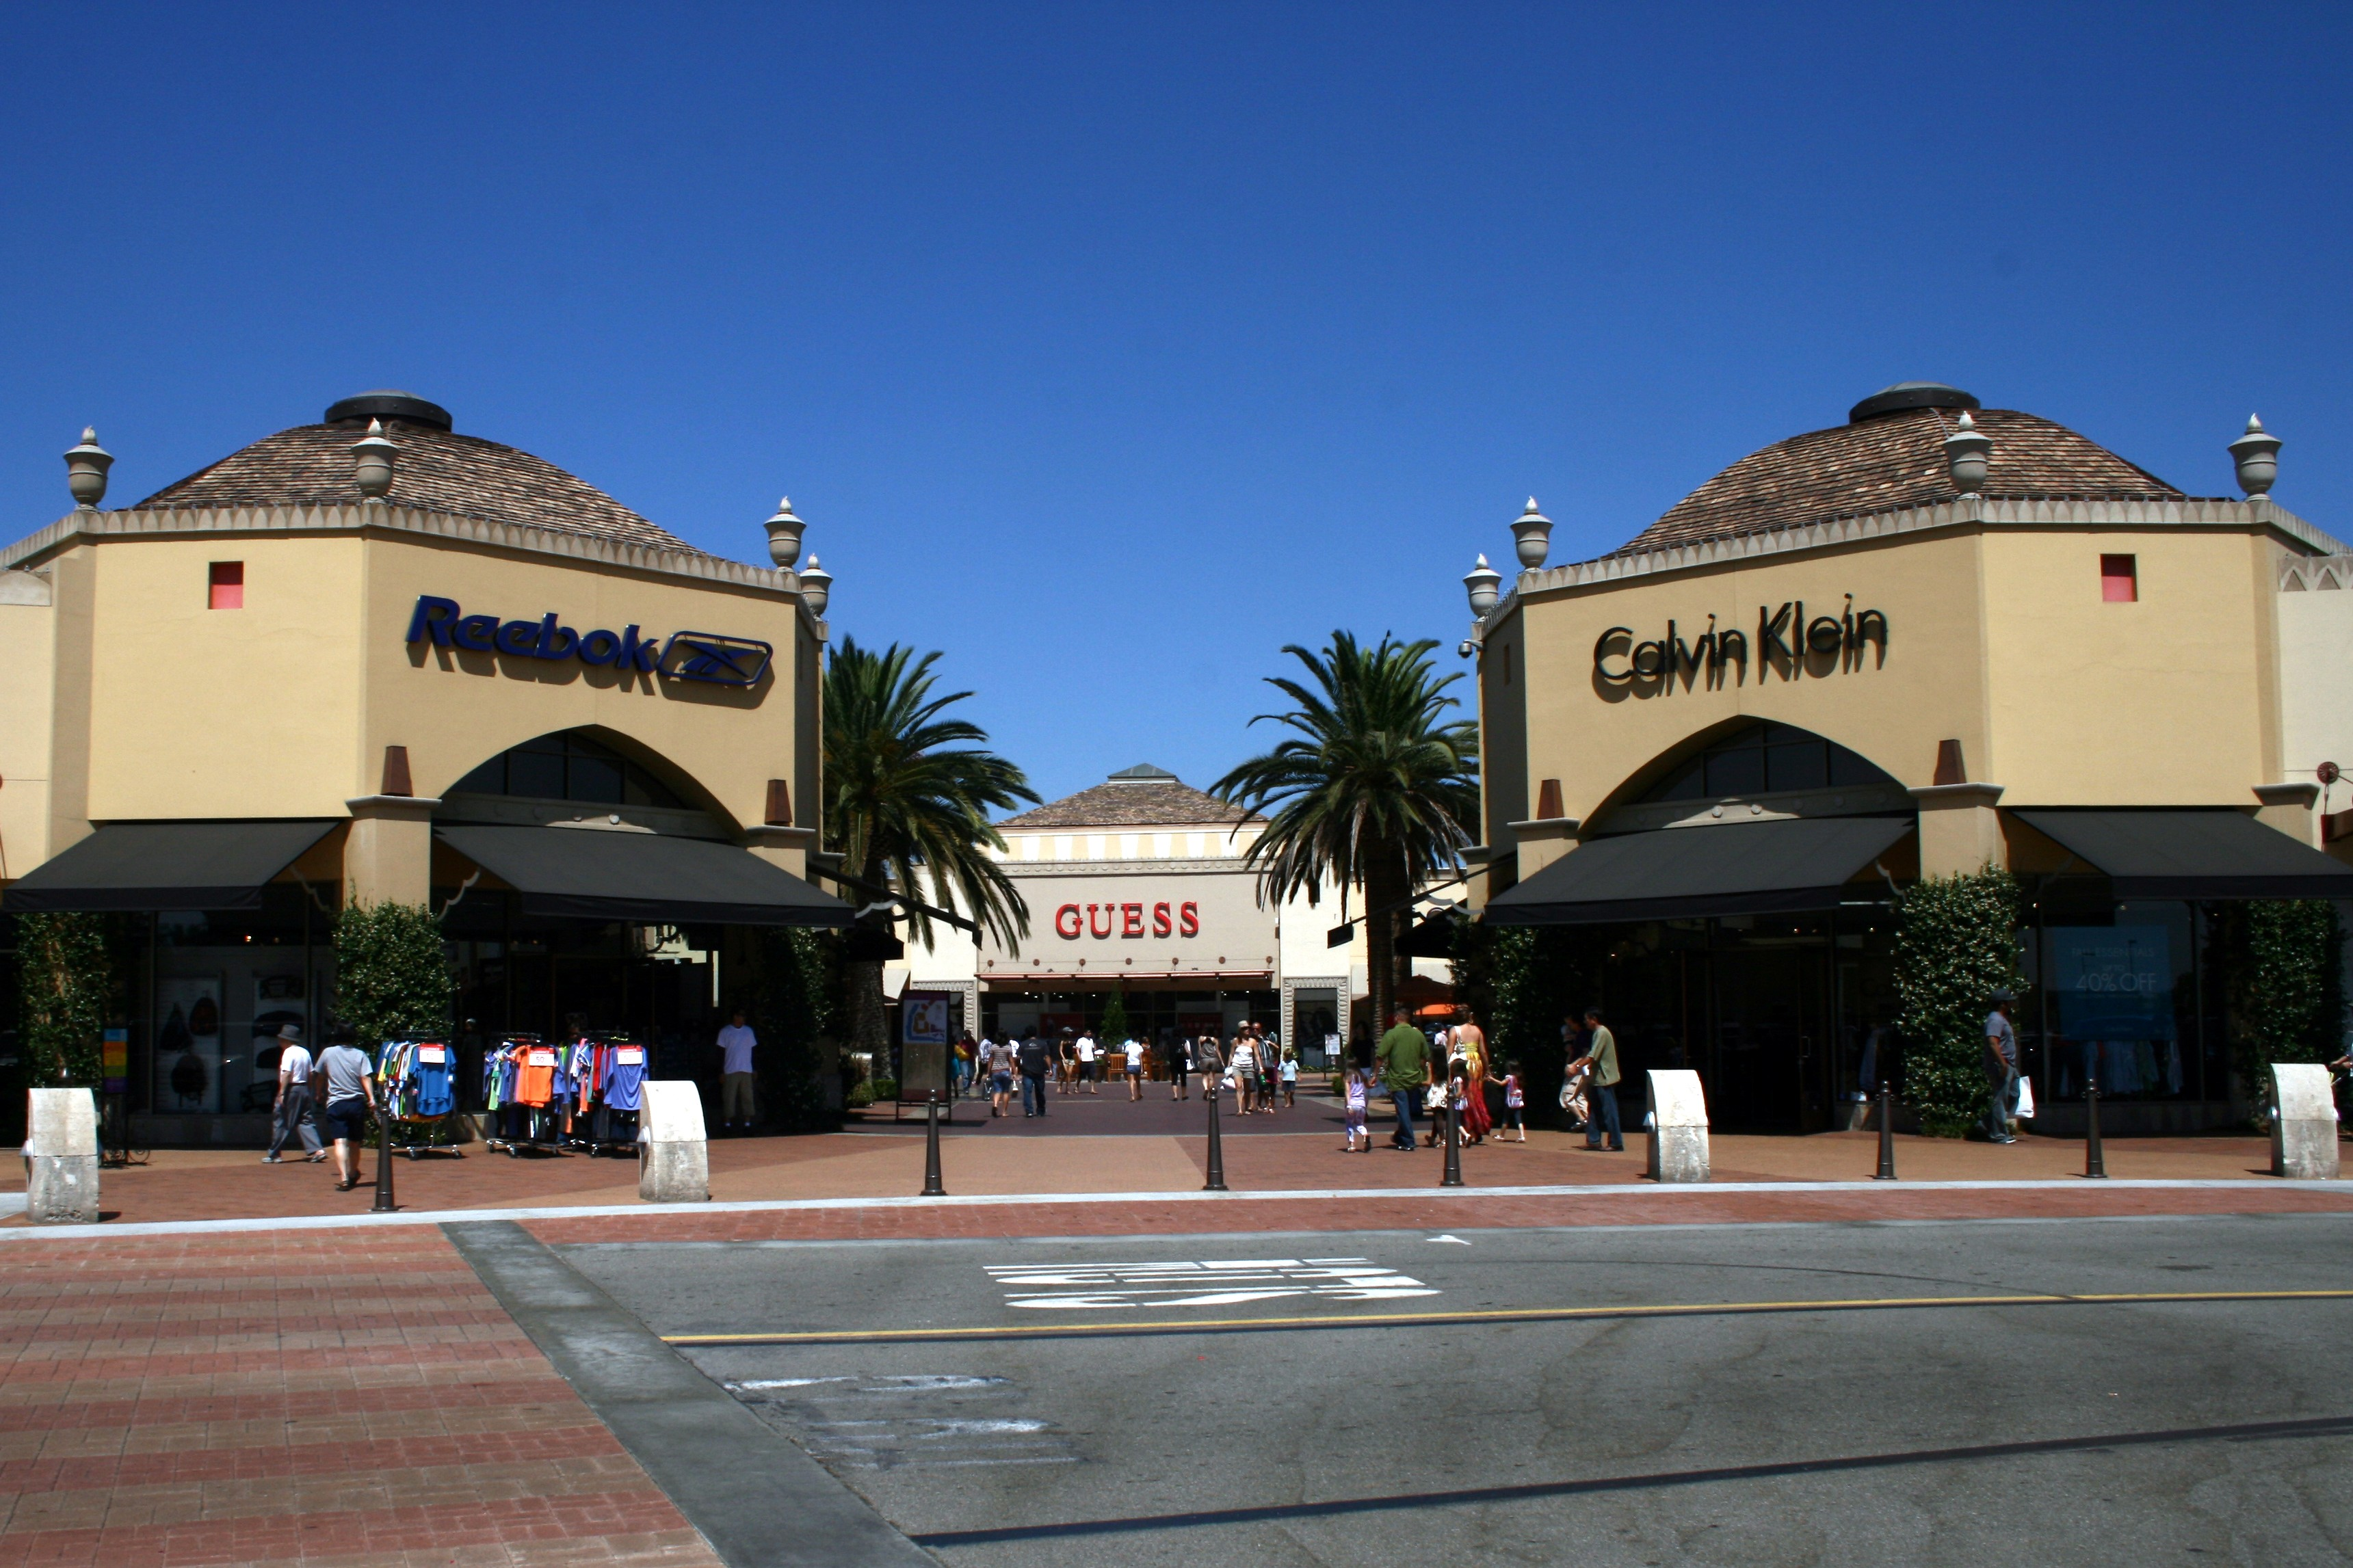 """The Citadel Outlets shopping center is one of the closest outlets to Los Angeles. Appropriately named, the collection of shops is located within a """"castle,"""" complete with brand-name stores. Appropriately named, the collection of shops is located within a """"castle,"""" complete with brand-name stores."""